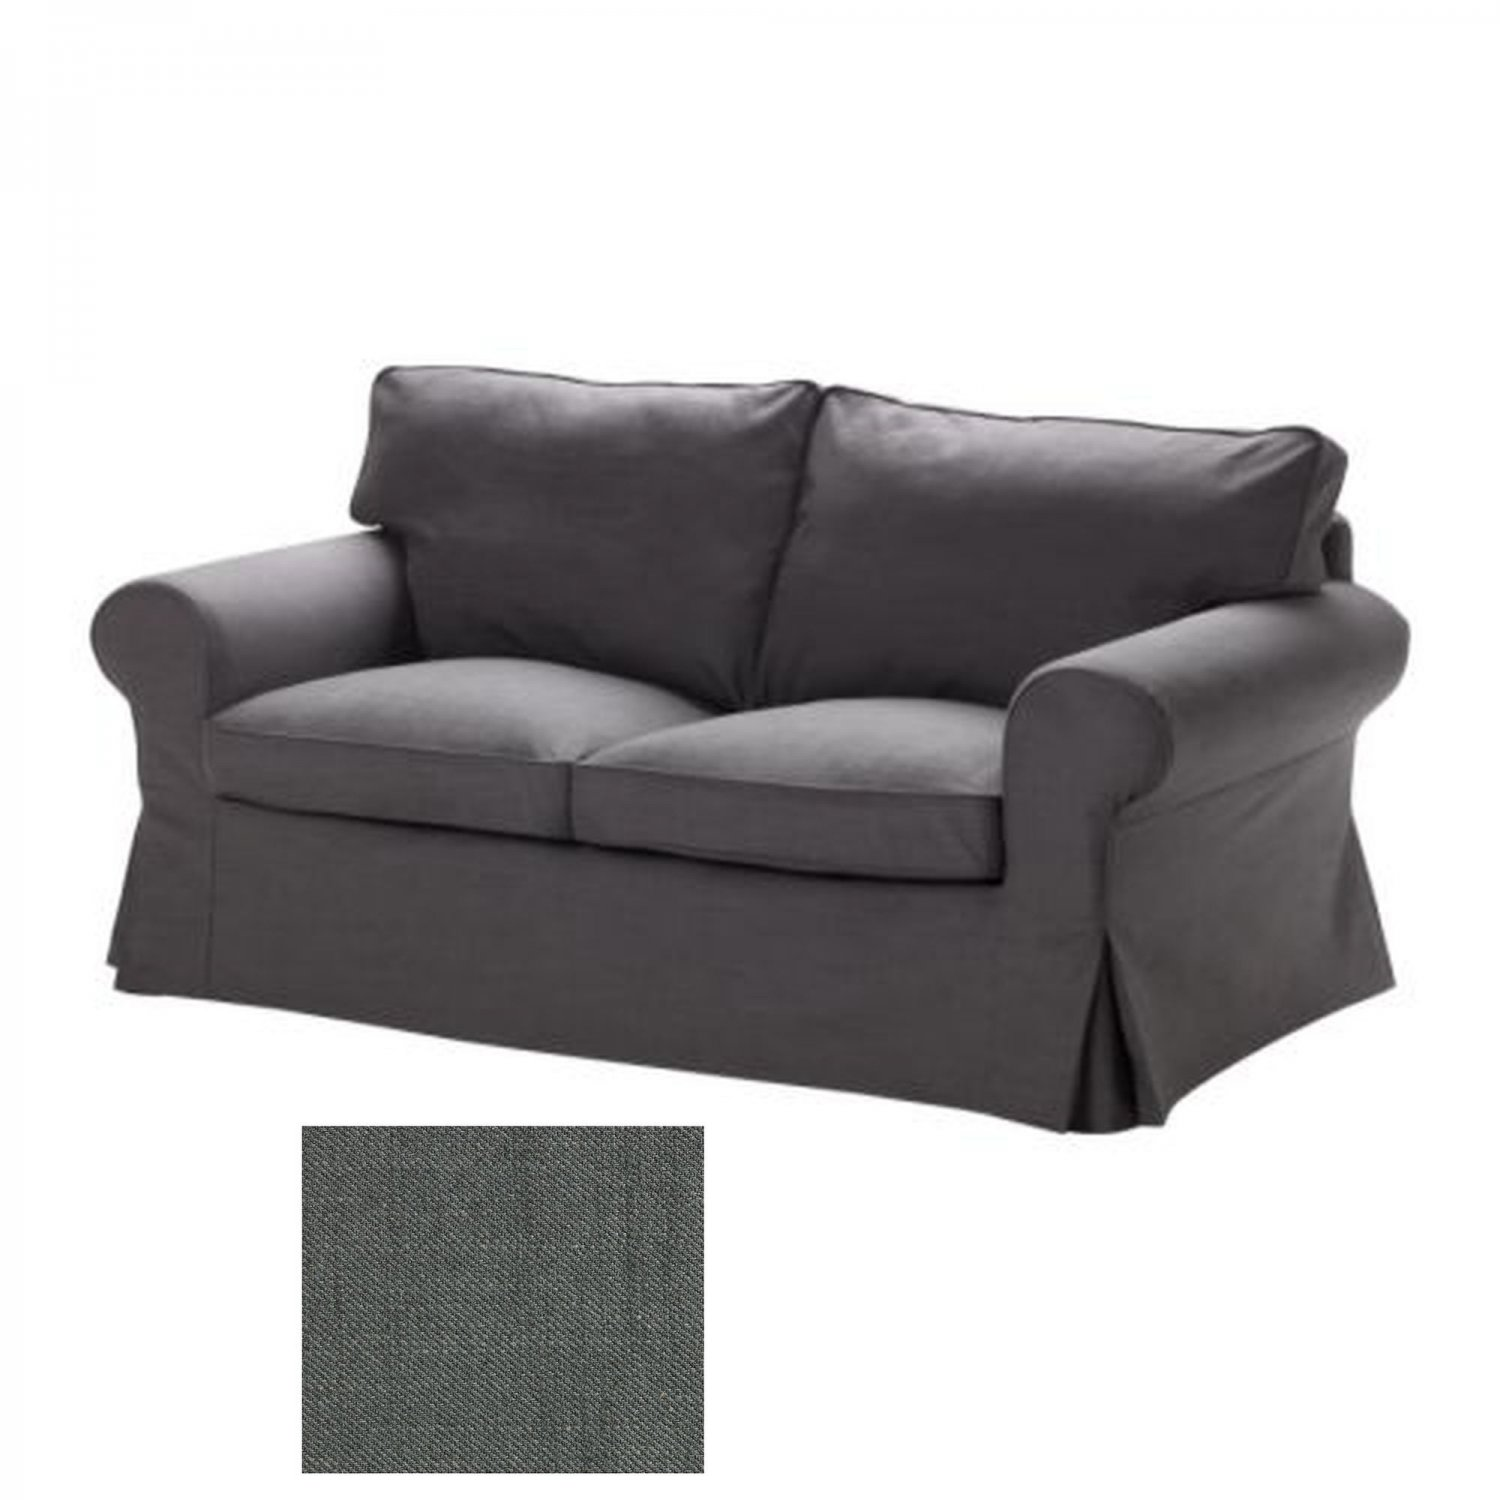 Ikea ektorp 2 seat sofa slipcover loveseat cover svanby gray grey Loveseat slipcover